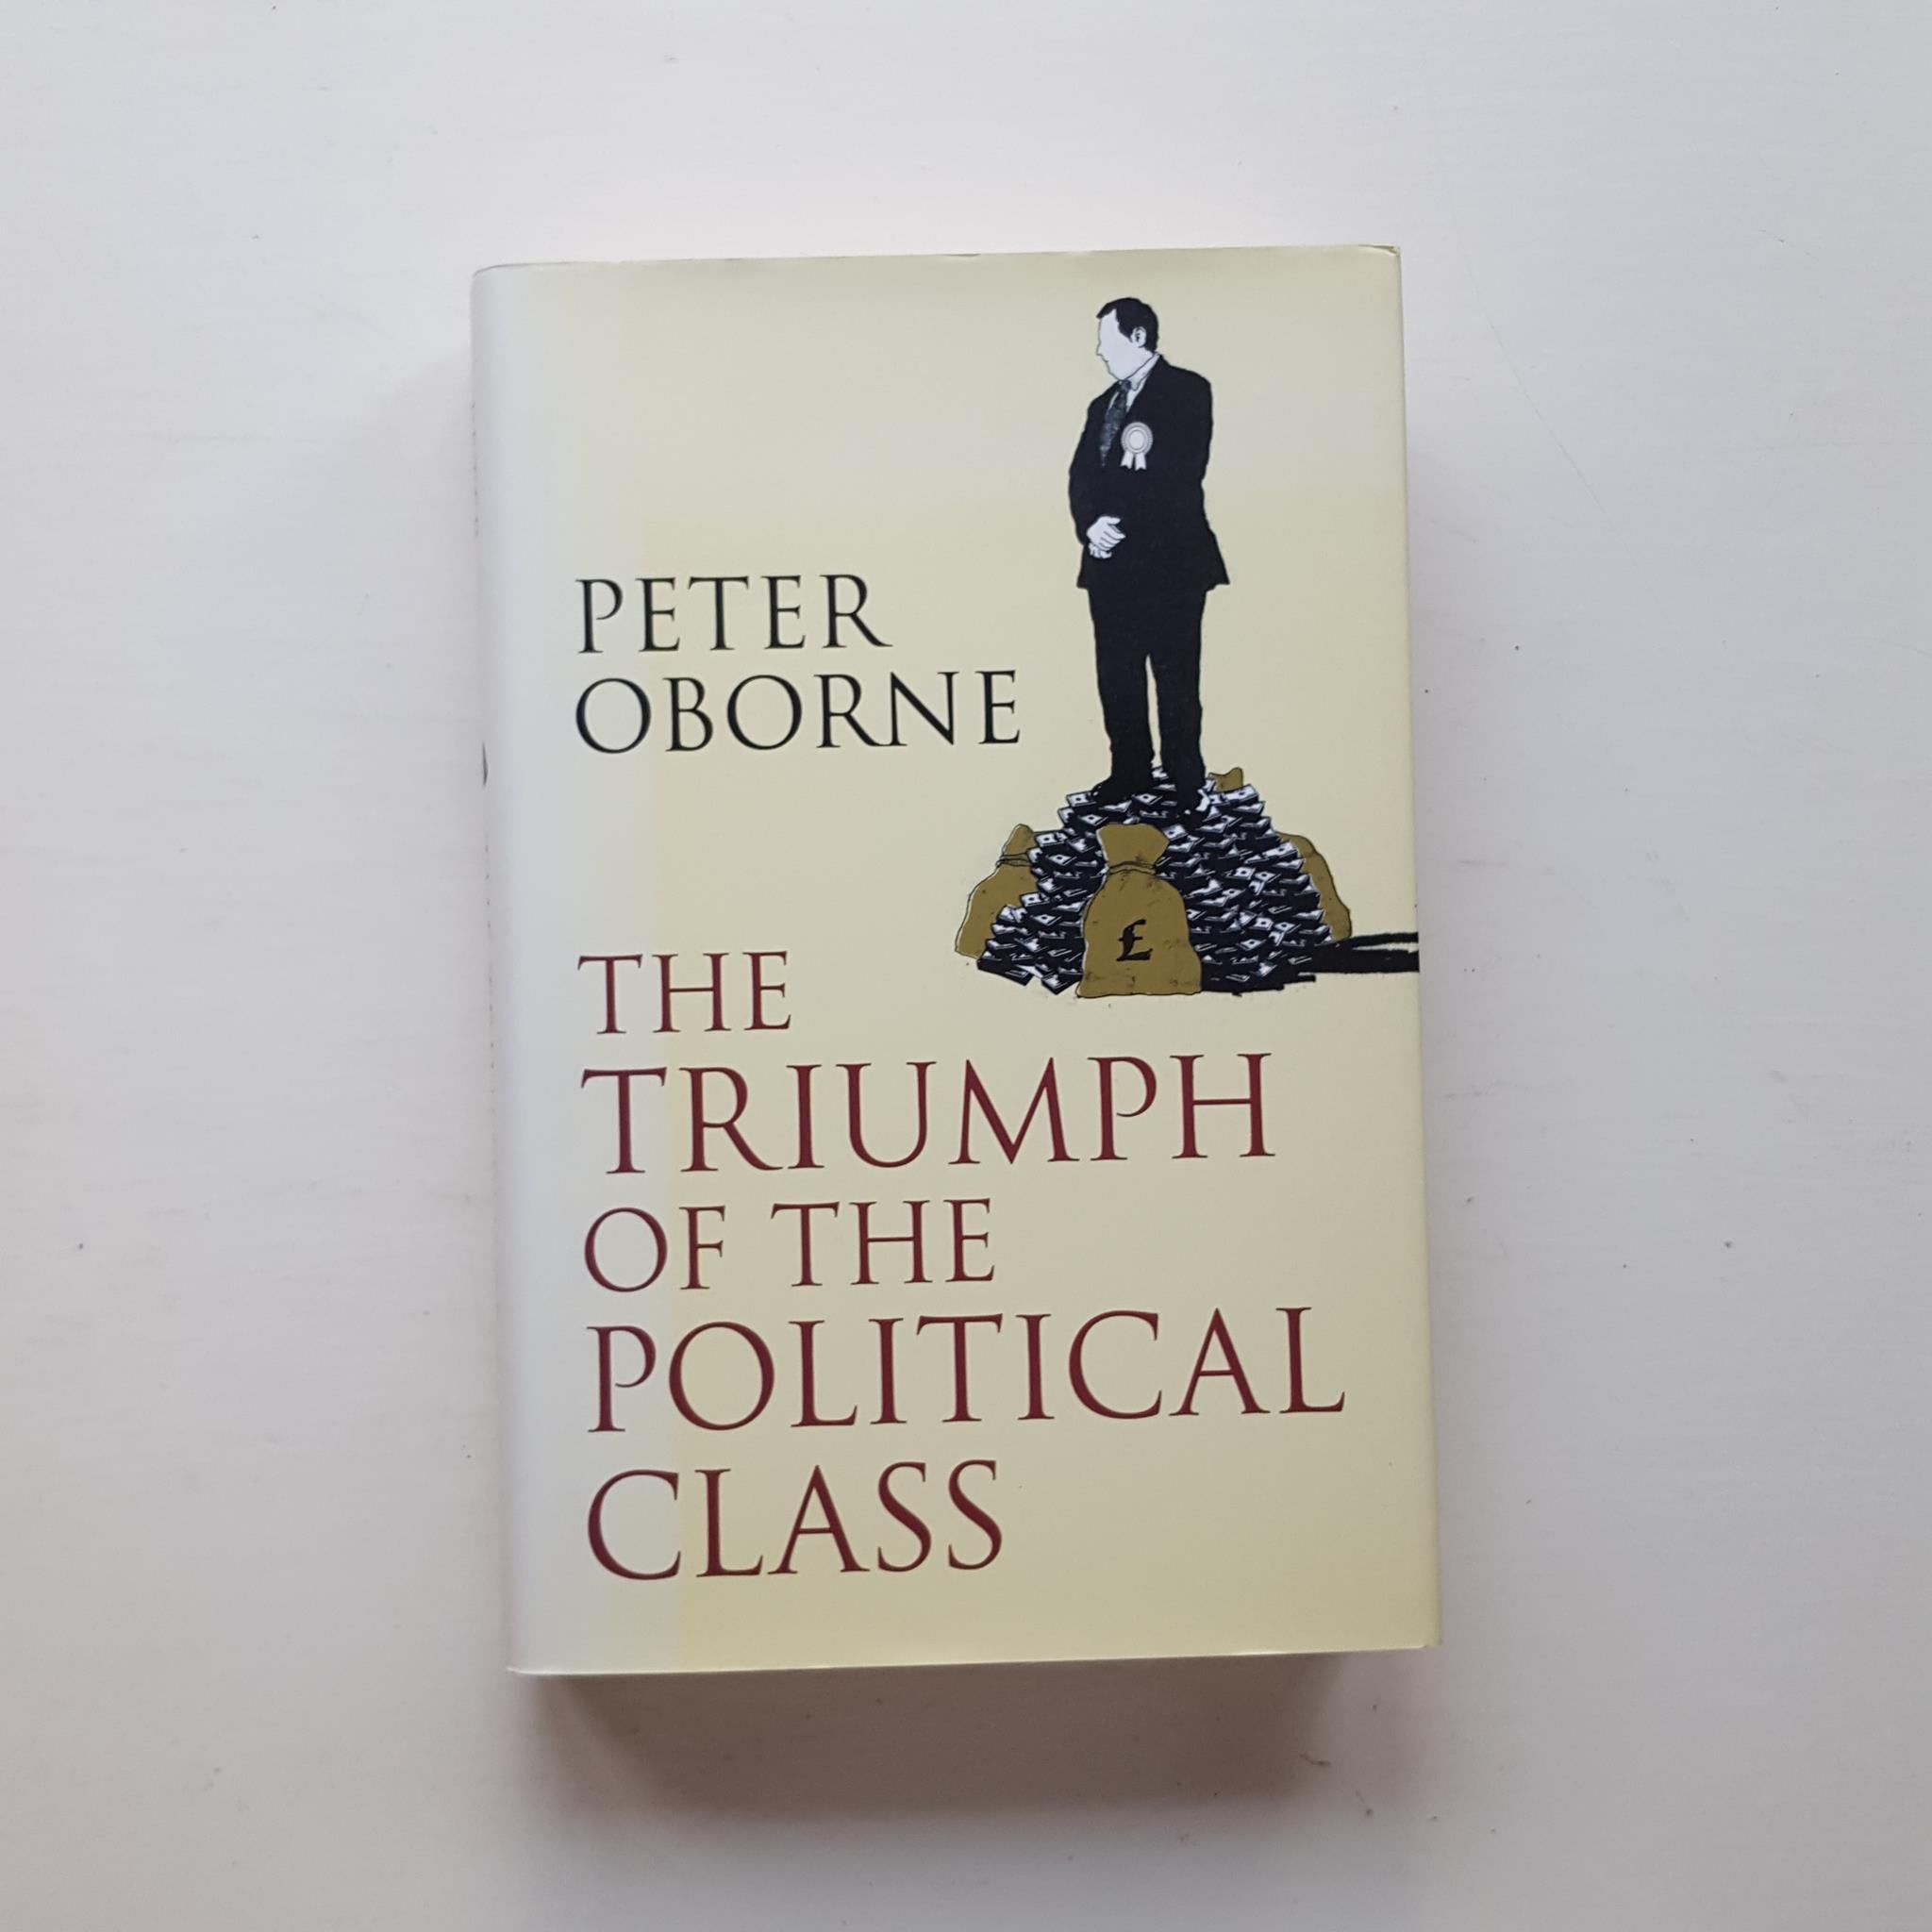 The Triumph of the Political Class by Peter Osborn